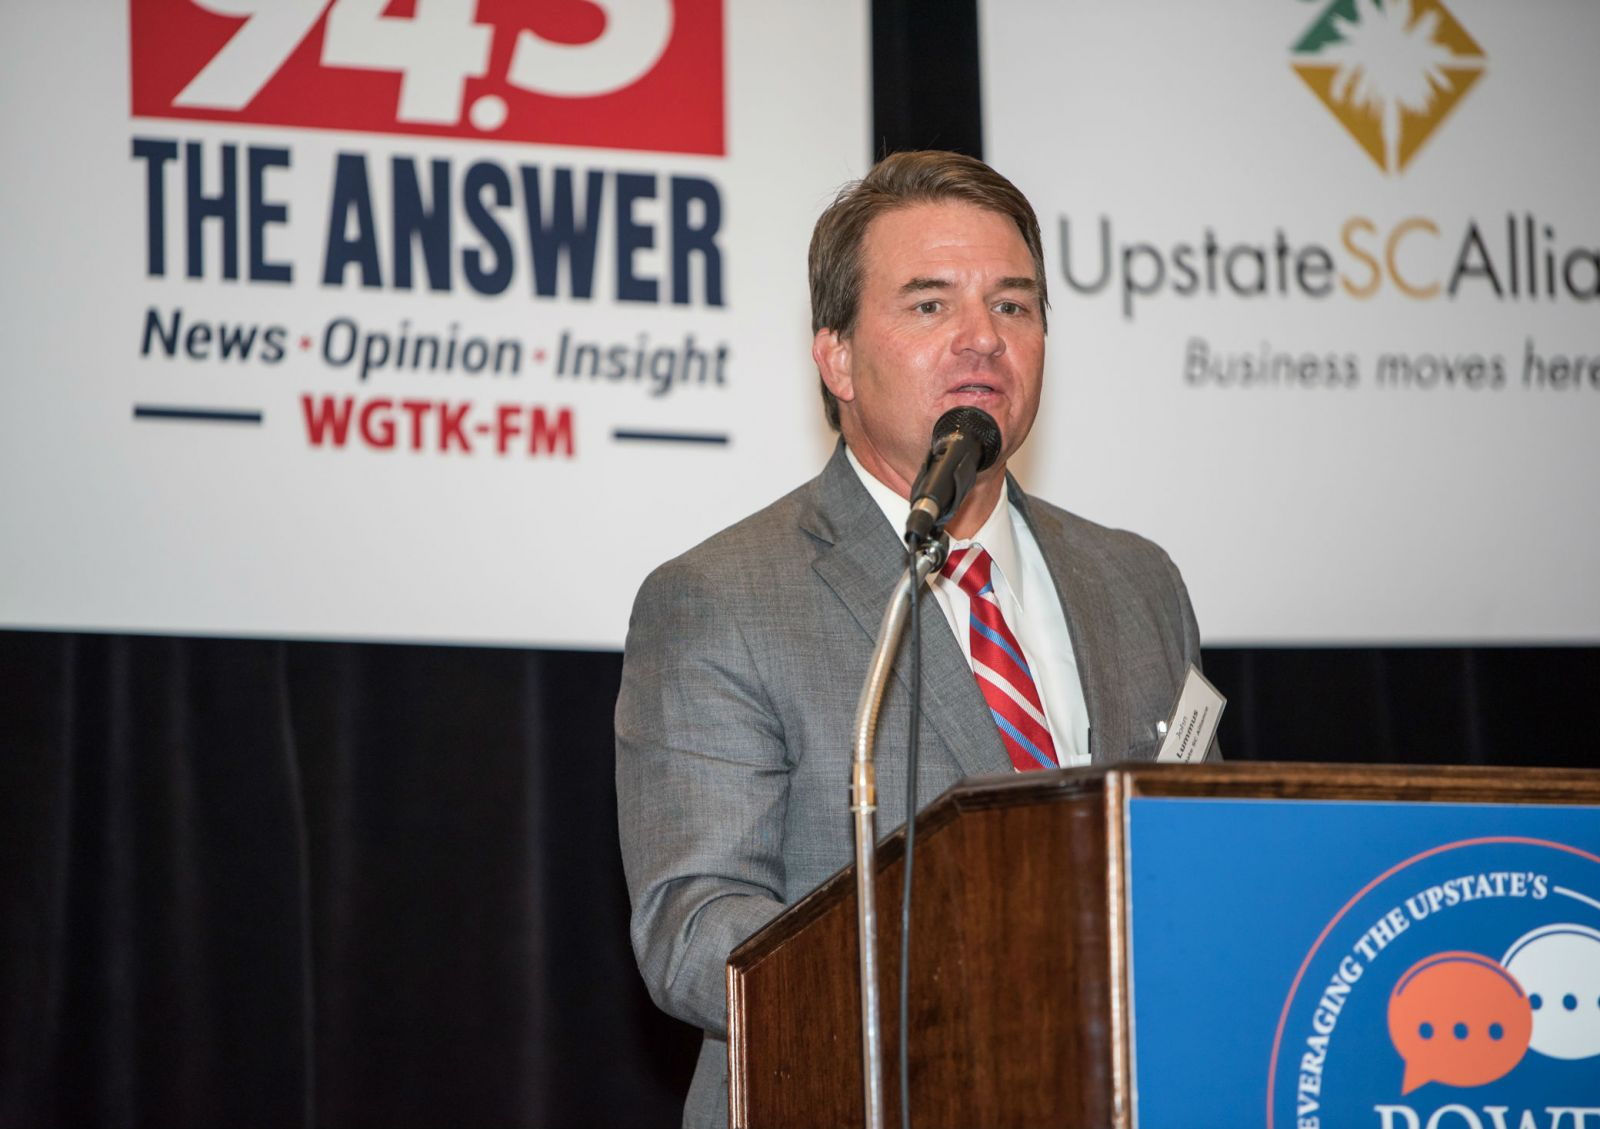 John Lummus, president and CEO of the Upstate SC Alliance, talked about the changing economy during a GSA Business Report power event. (Photo/Kathy Allen)